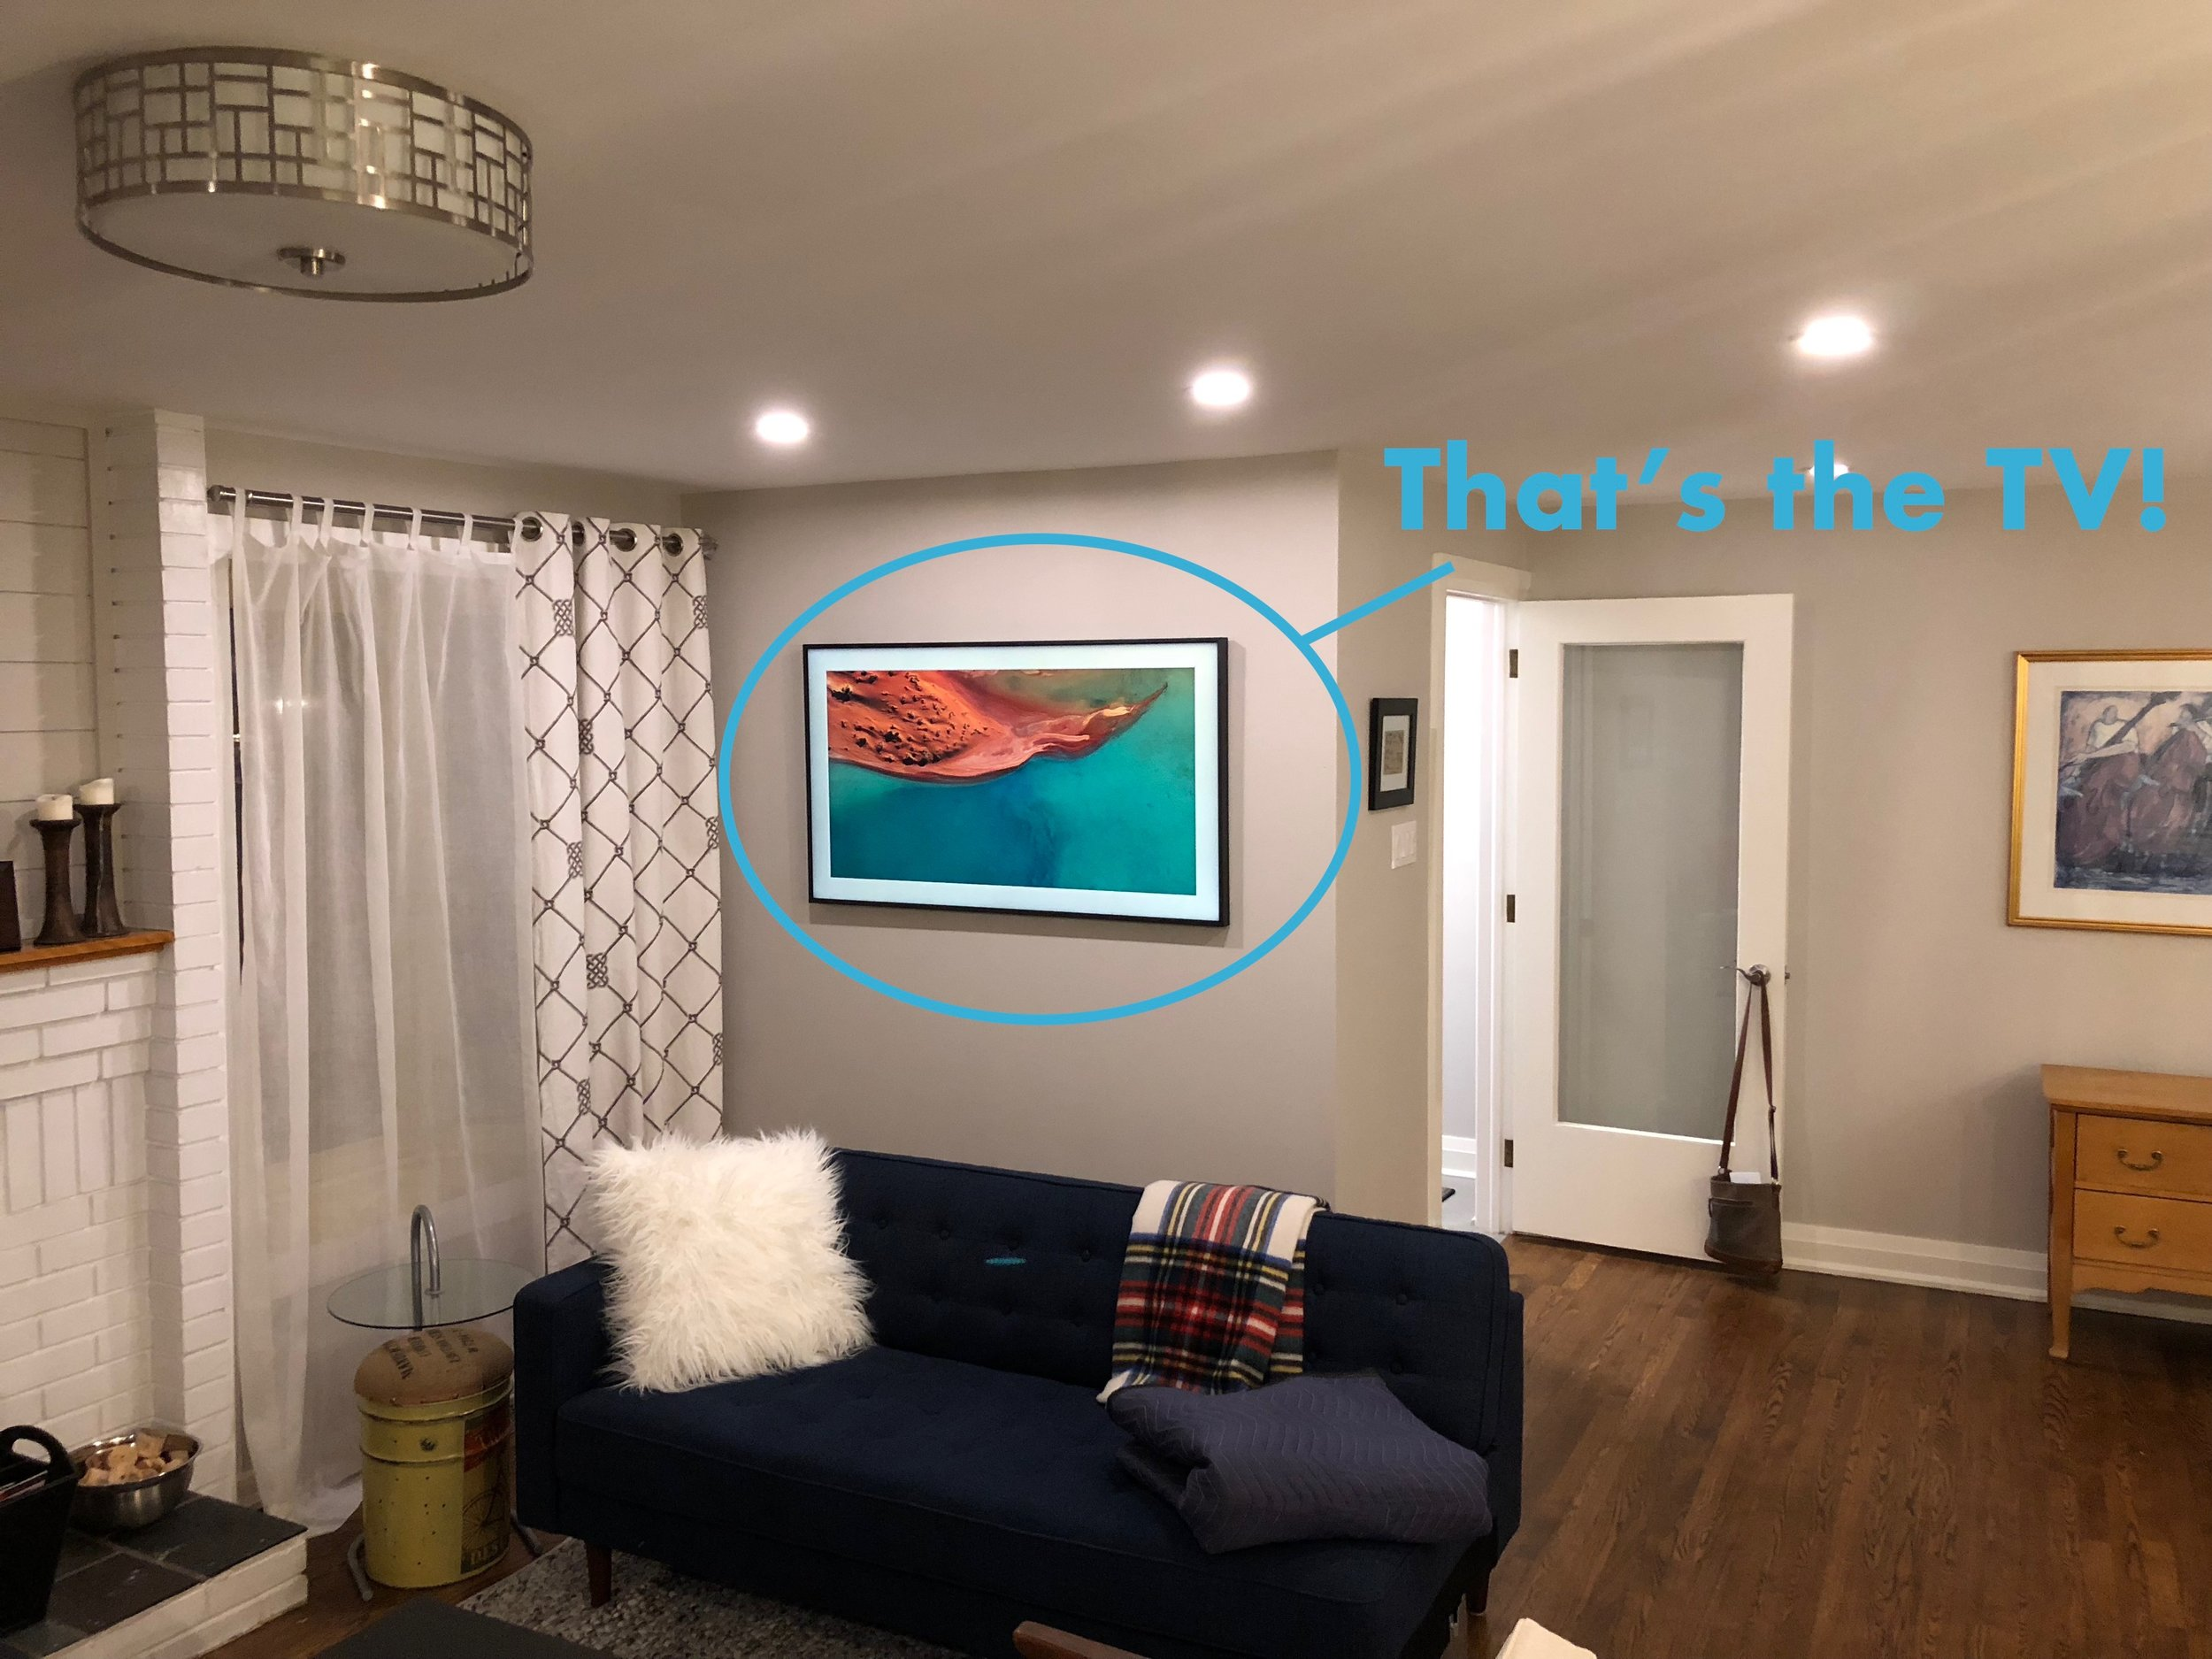 Hanging a TV? - Nothing ruins a well decorated living room quicker than seeing messy wiring around your TV.  Have your TV hung professionally, and love the look of your room.